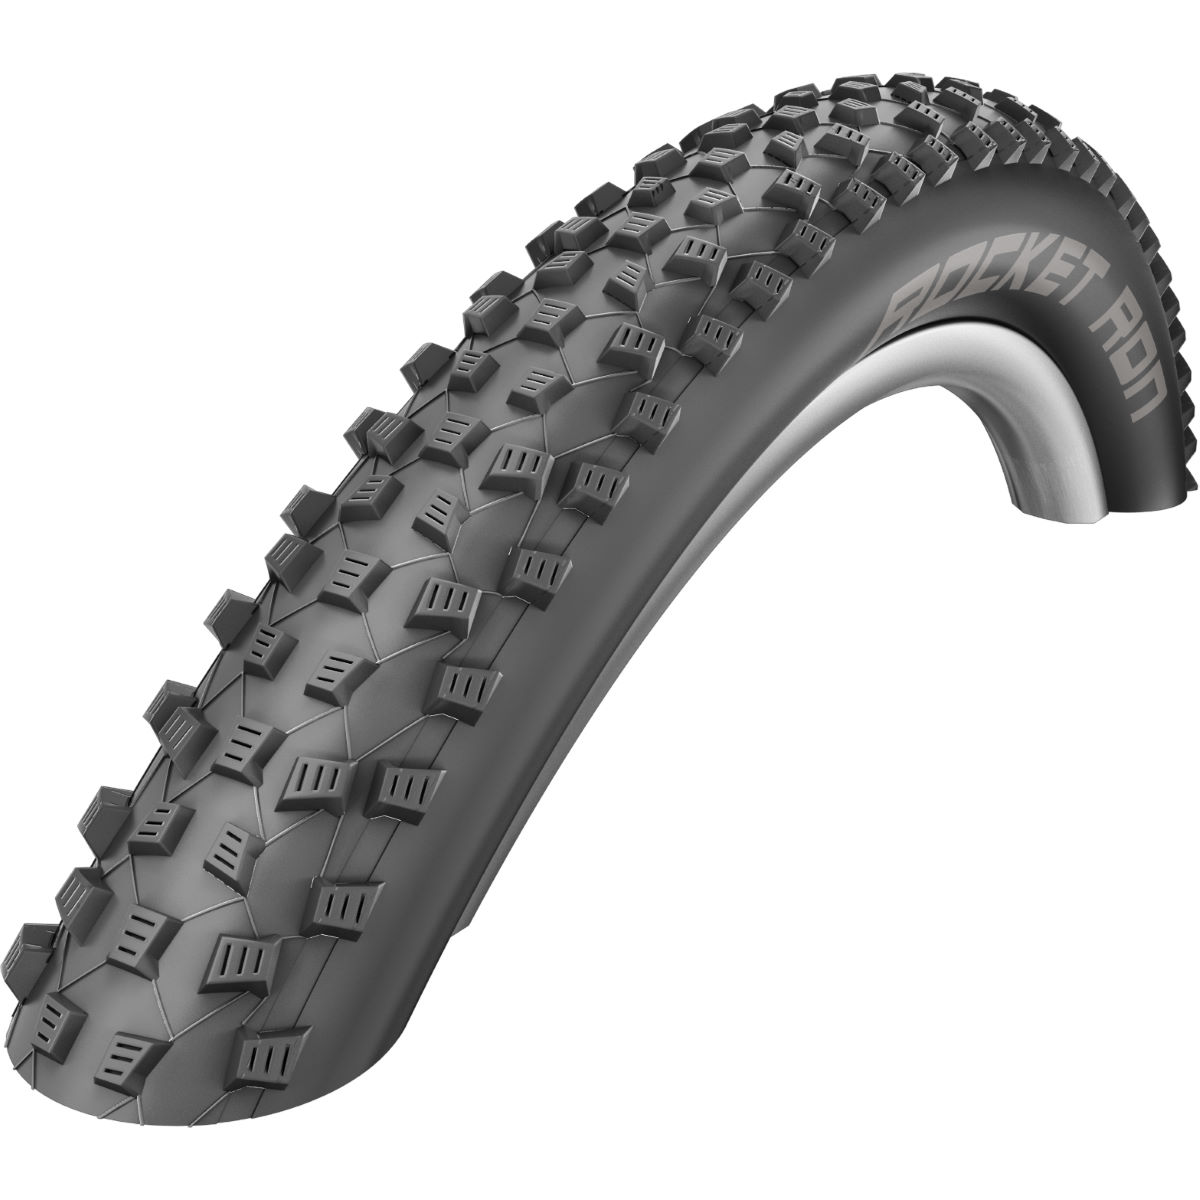 Pneu VTT Schwalbe Rocket Ron Addix Performance - 26' 2.1' Folding Bea